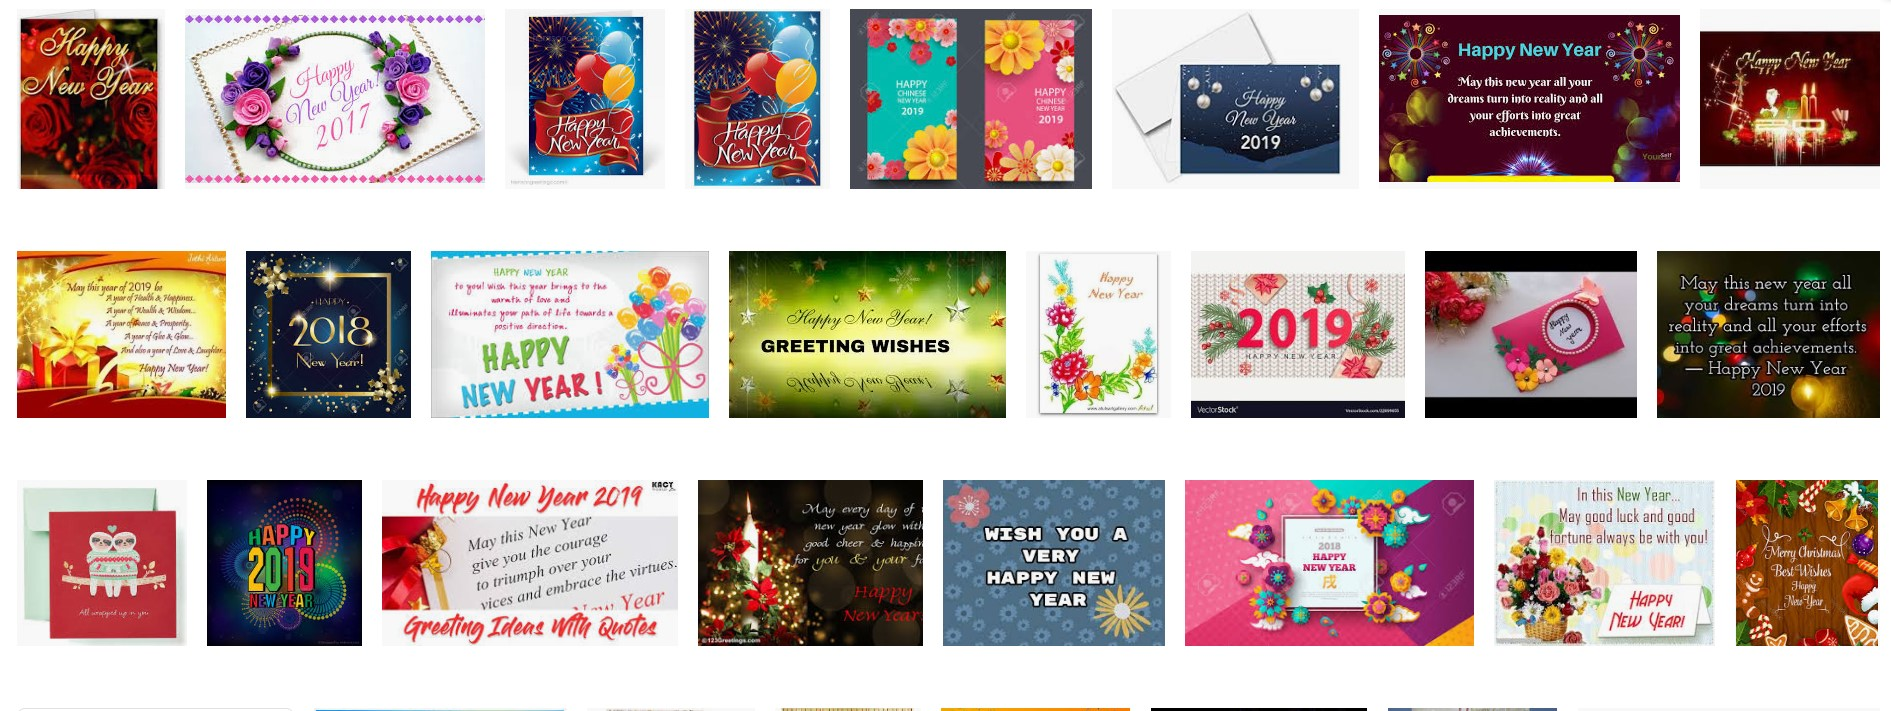 Happy New Year Messages 2021 Hny 2021 Messages Wishes Quotes Greetings Cards